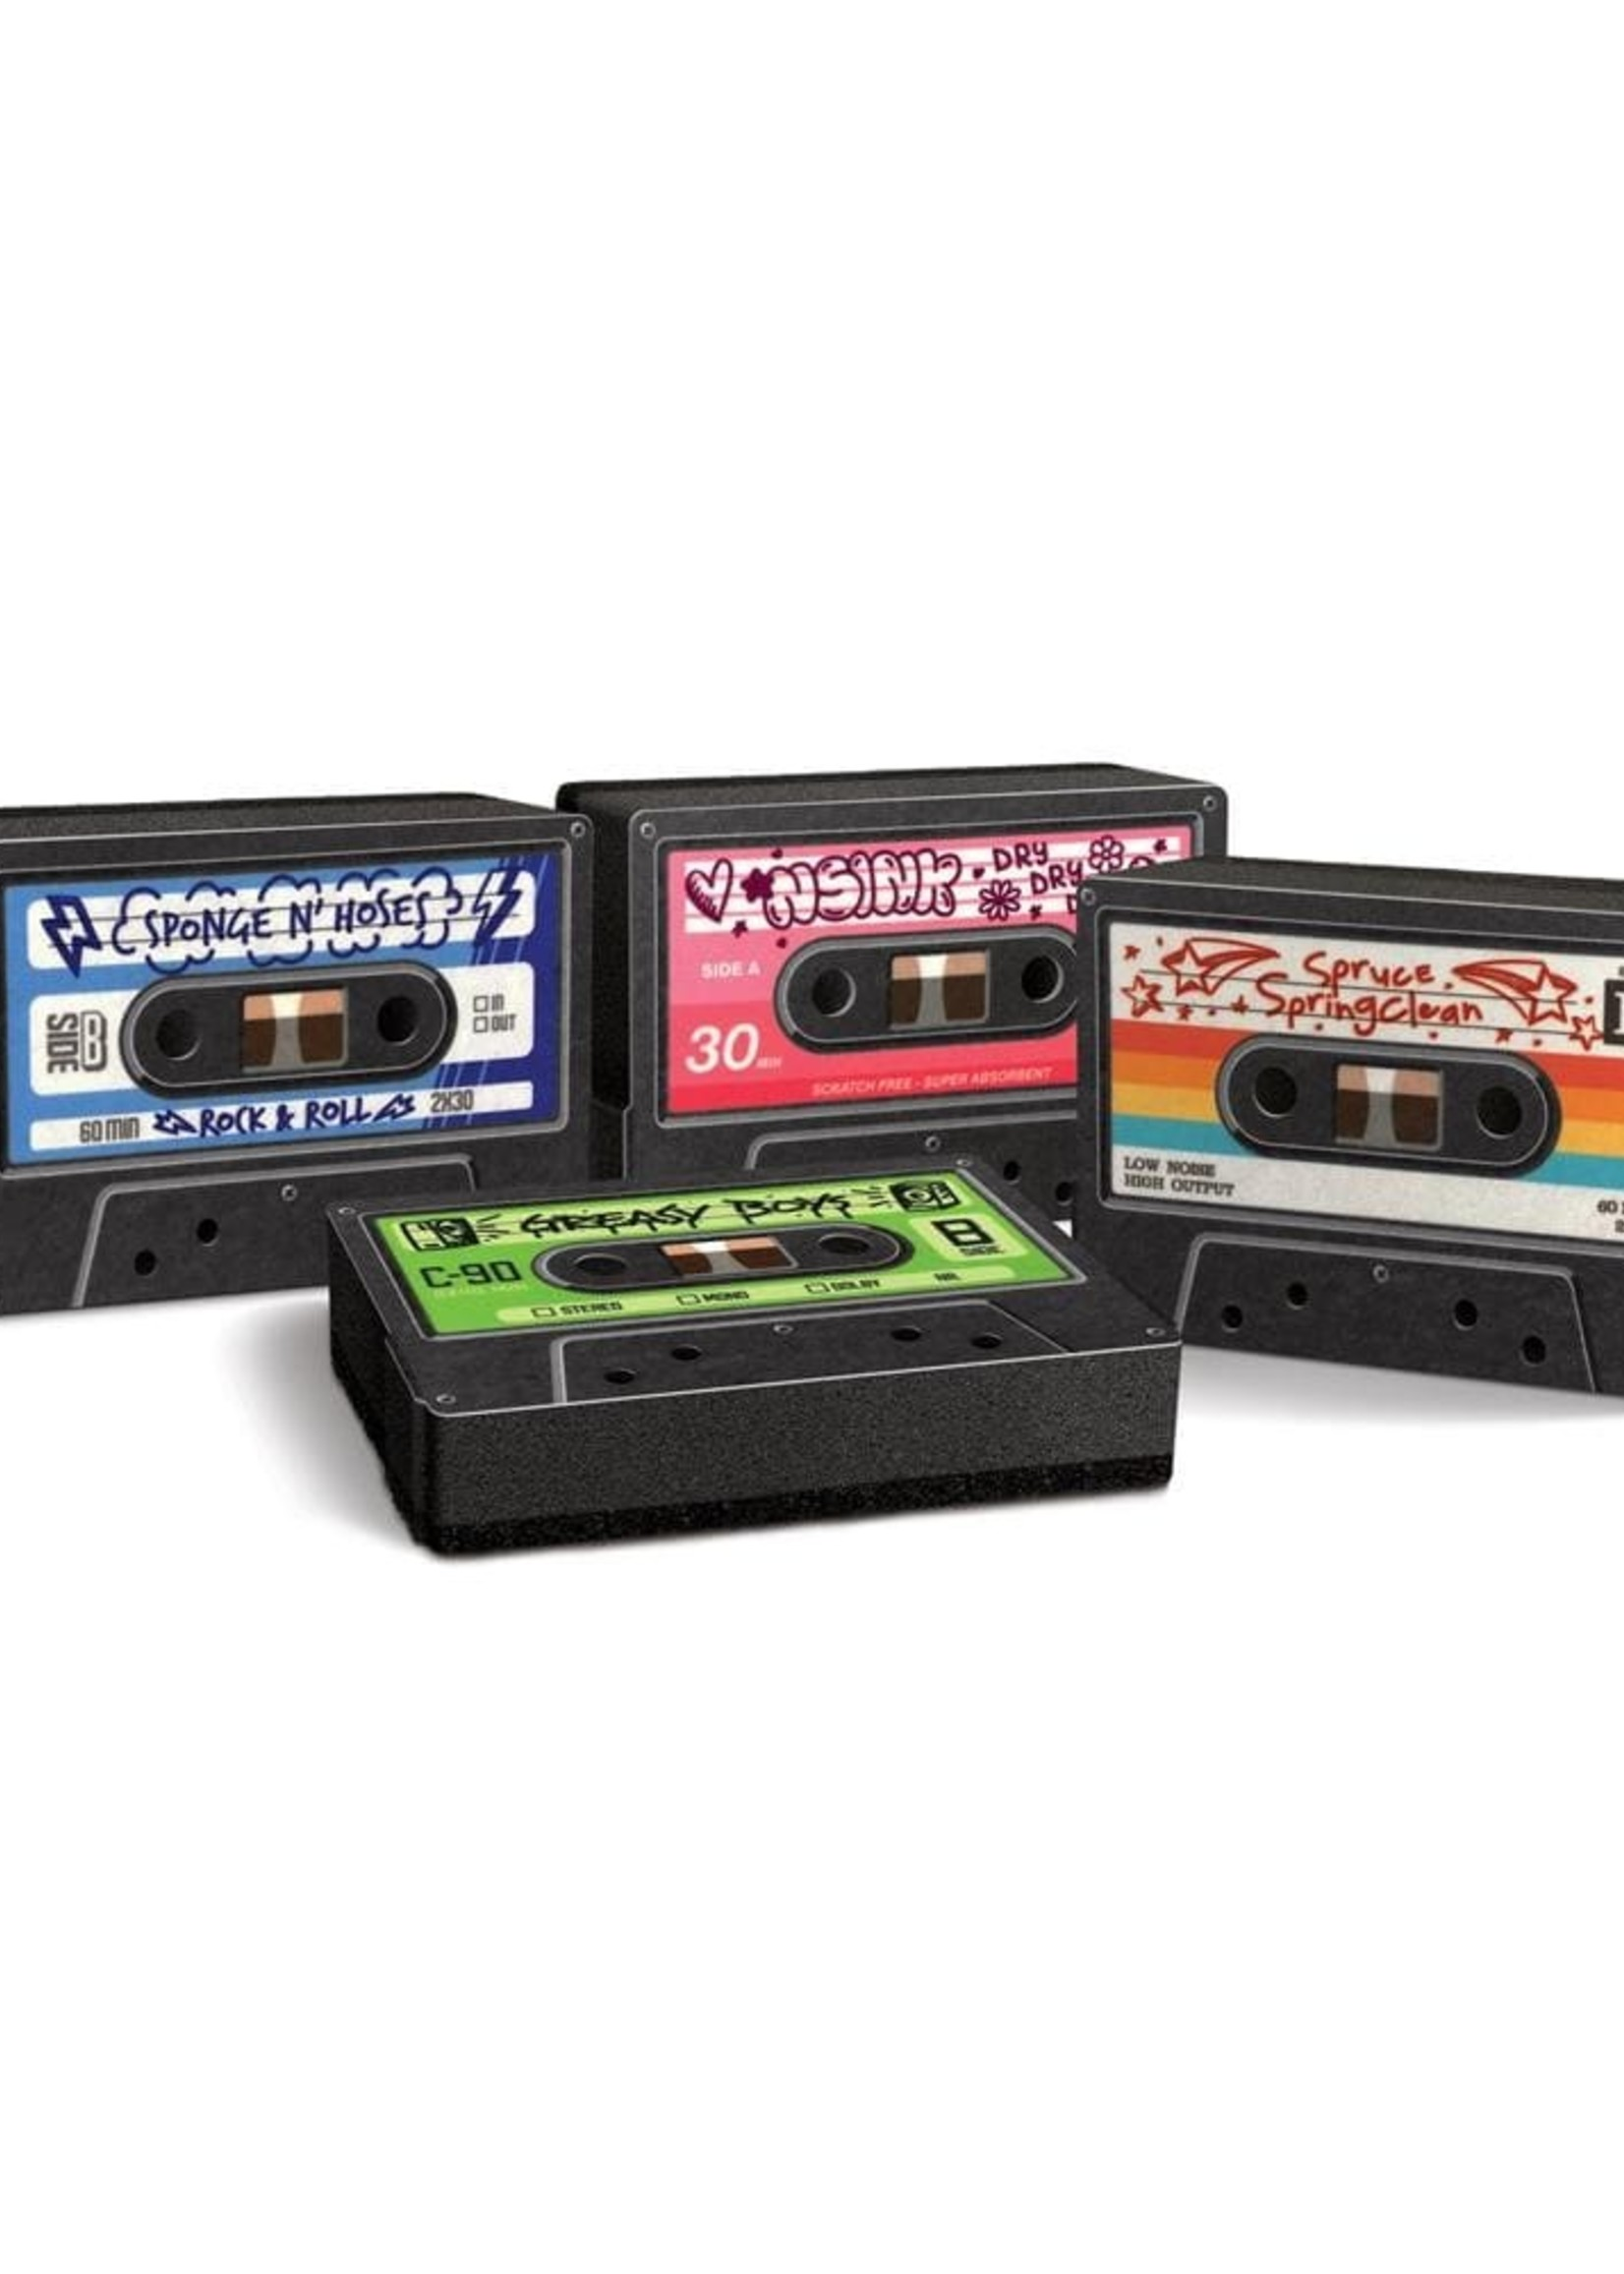 Fred & Friends FRED & FREINDS CASSETTE MIX TAPES SPONGES